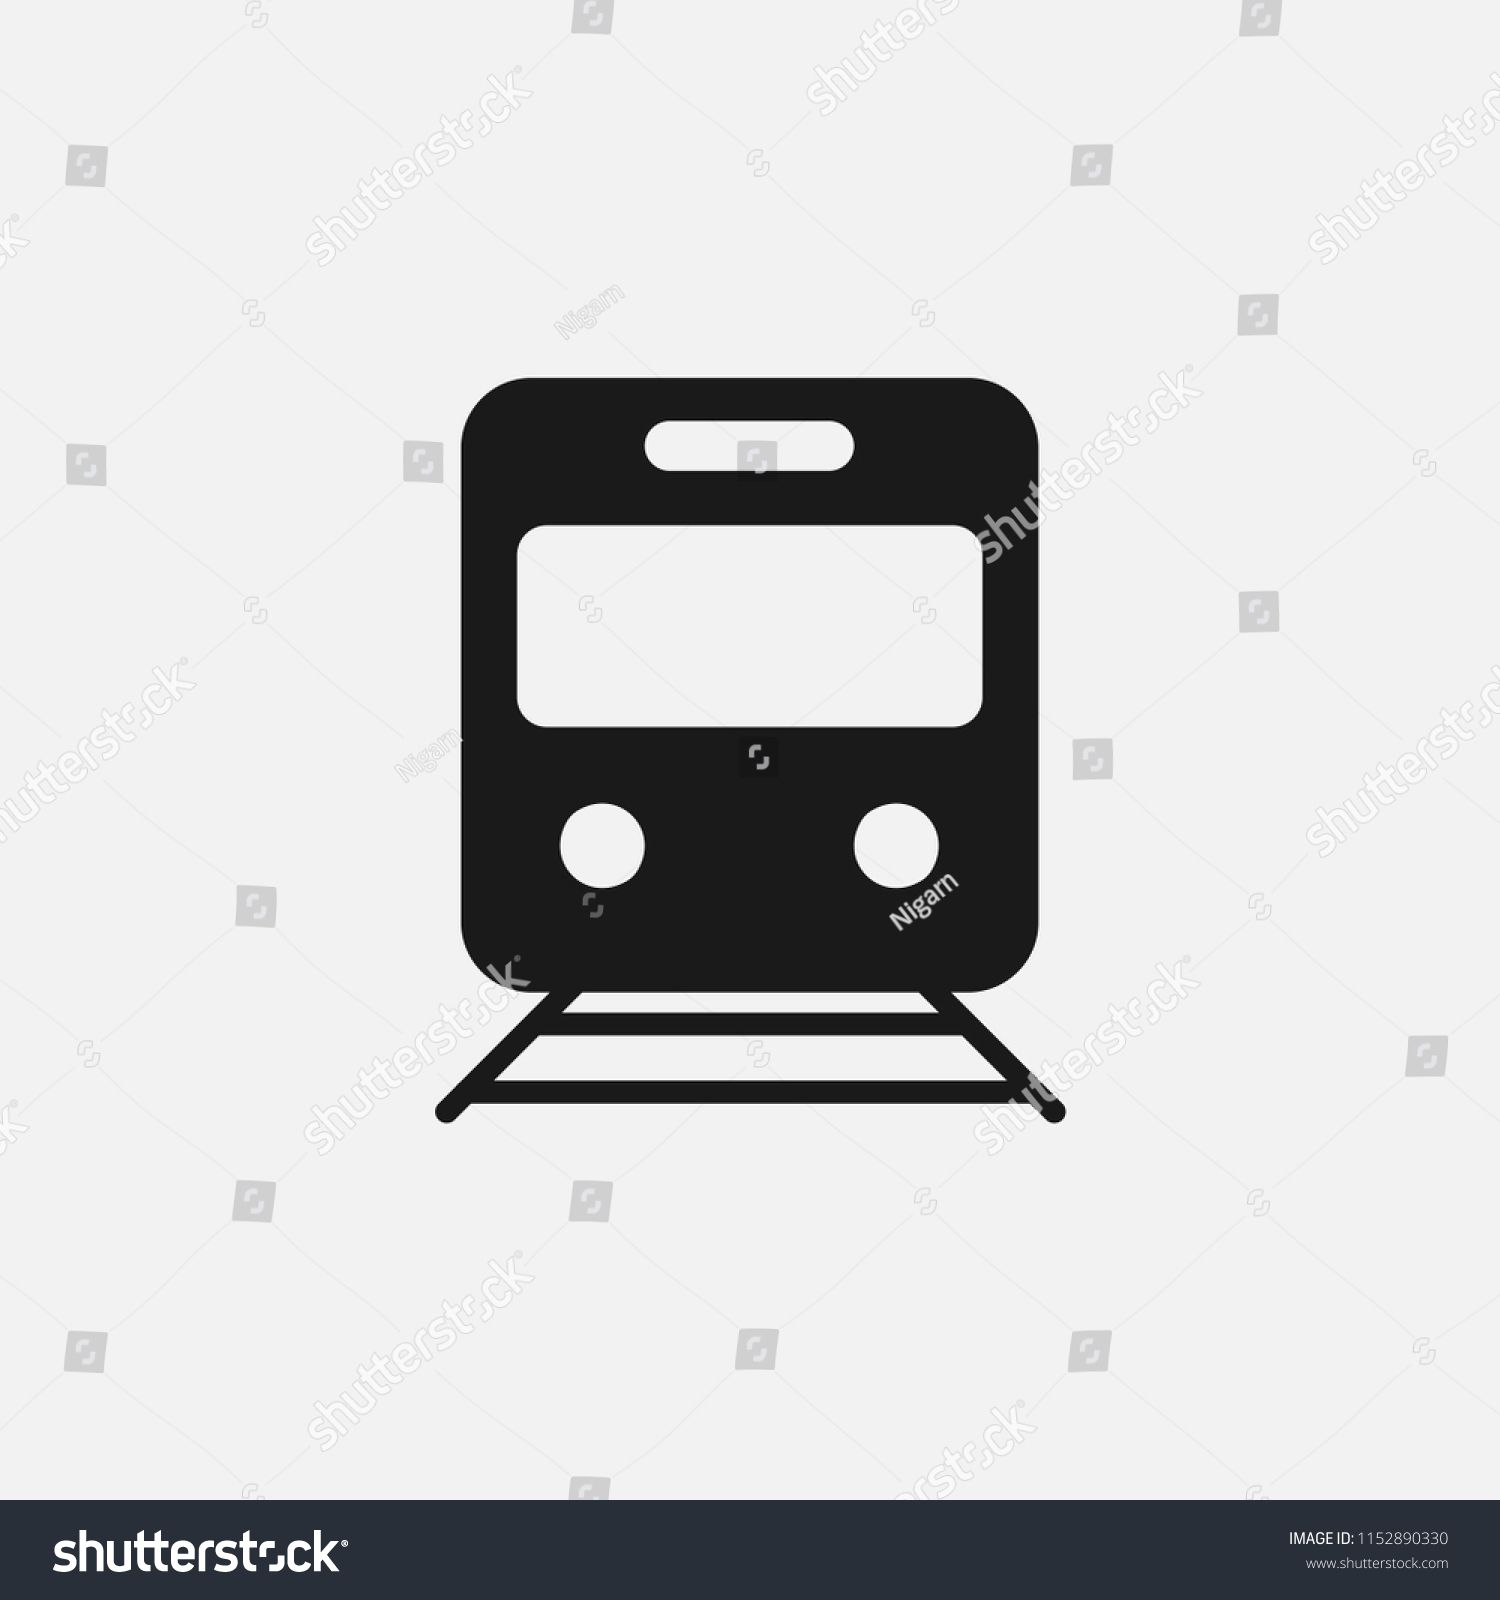 Train Sign Icon Vector Transportation Travel Transport Ailway Railroad Rail Station Track Vehicle Passenger Locomotive Speed Journey Wagon Passenger Locomotive